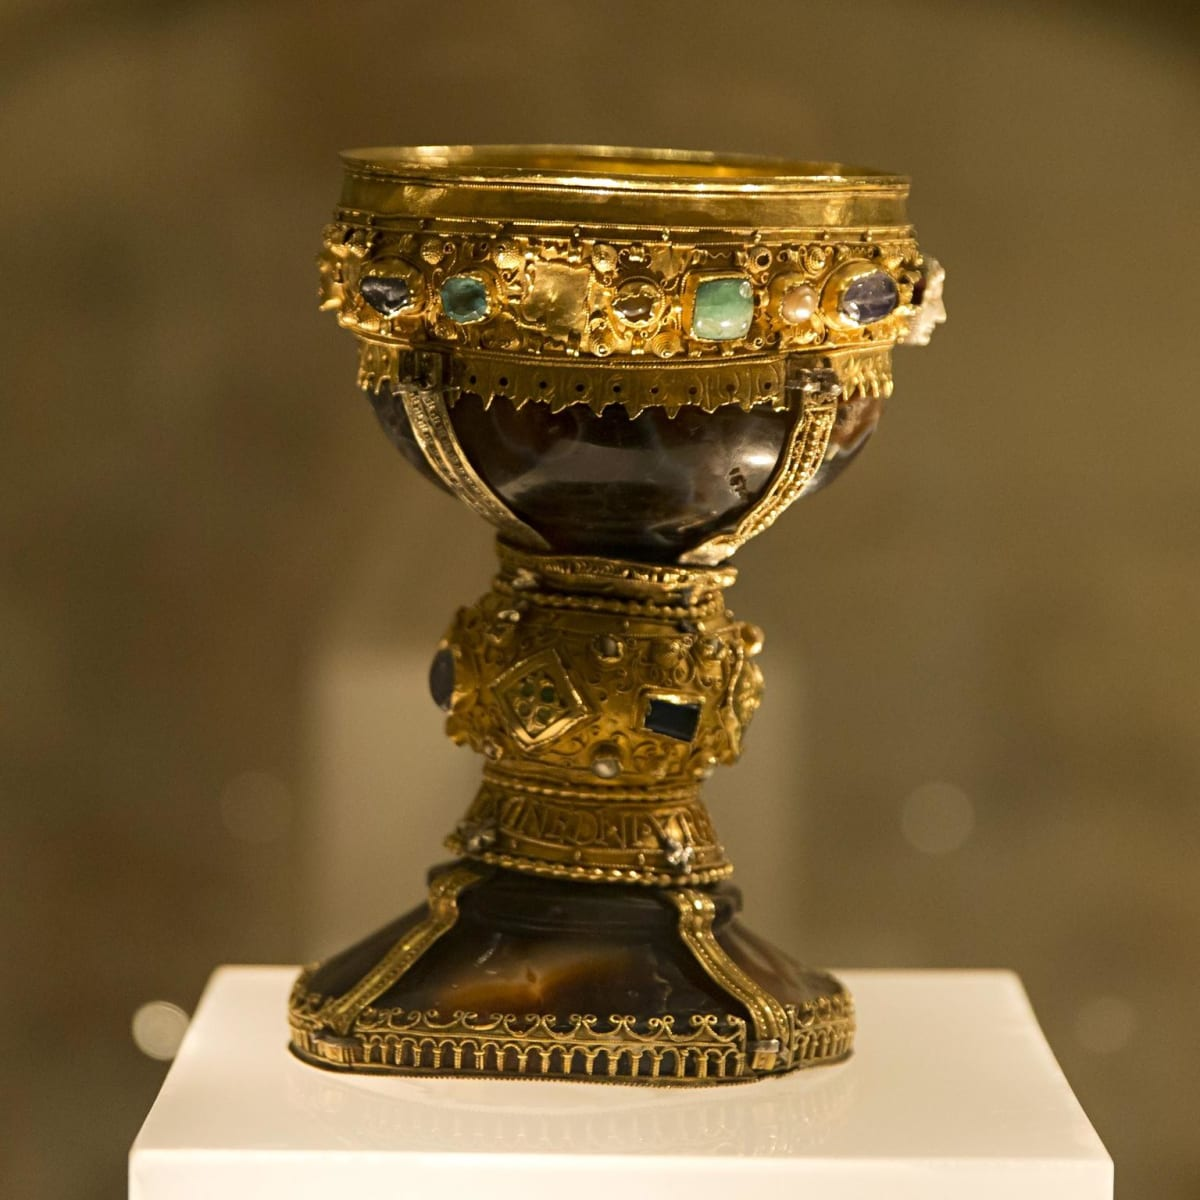 hith-has-the-holy-grail-been-found-2.jpg